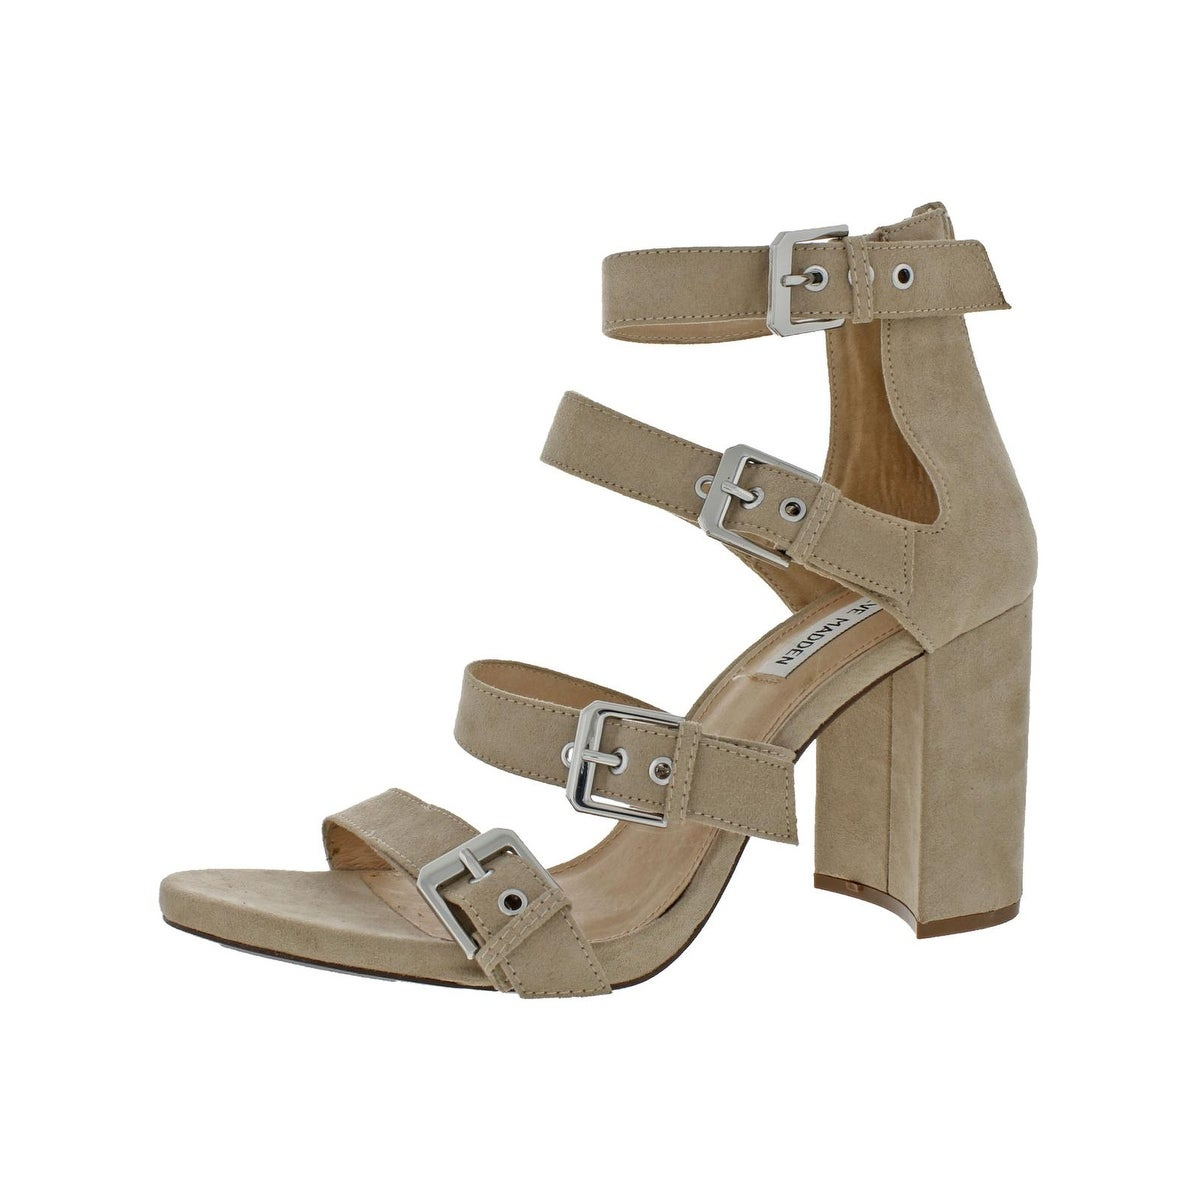 a702c711d8d9 Steve Madden Womens Shani Dress Sandals Strappy Block Heel - 9.5 Medium (B